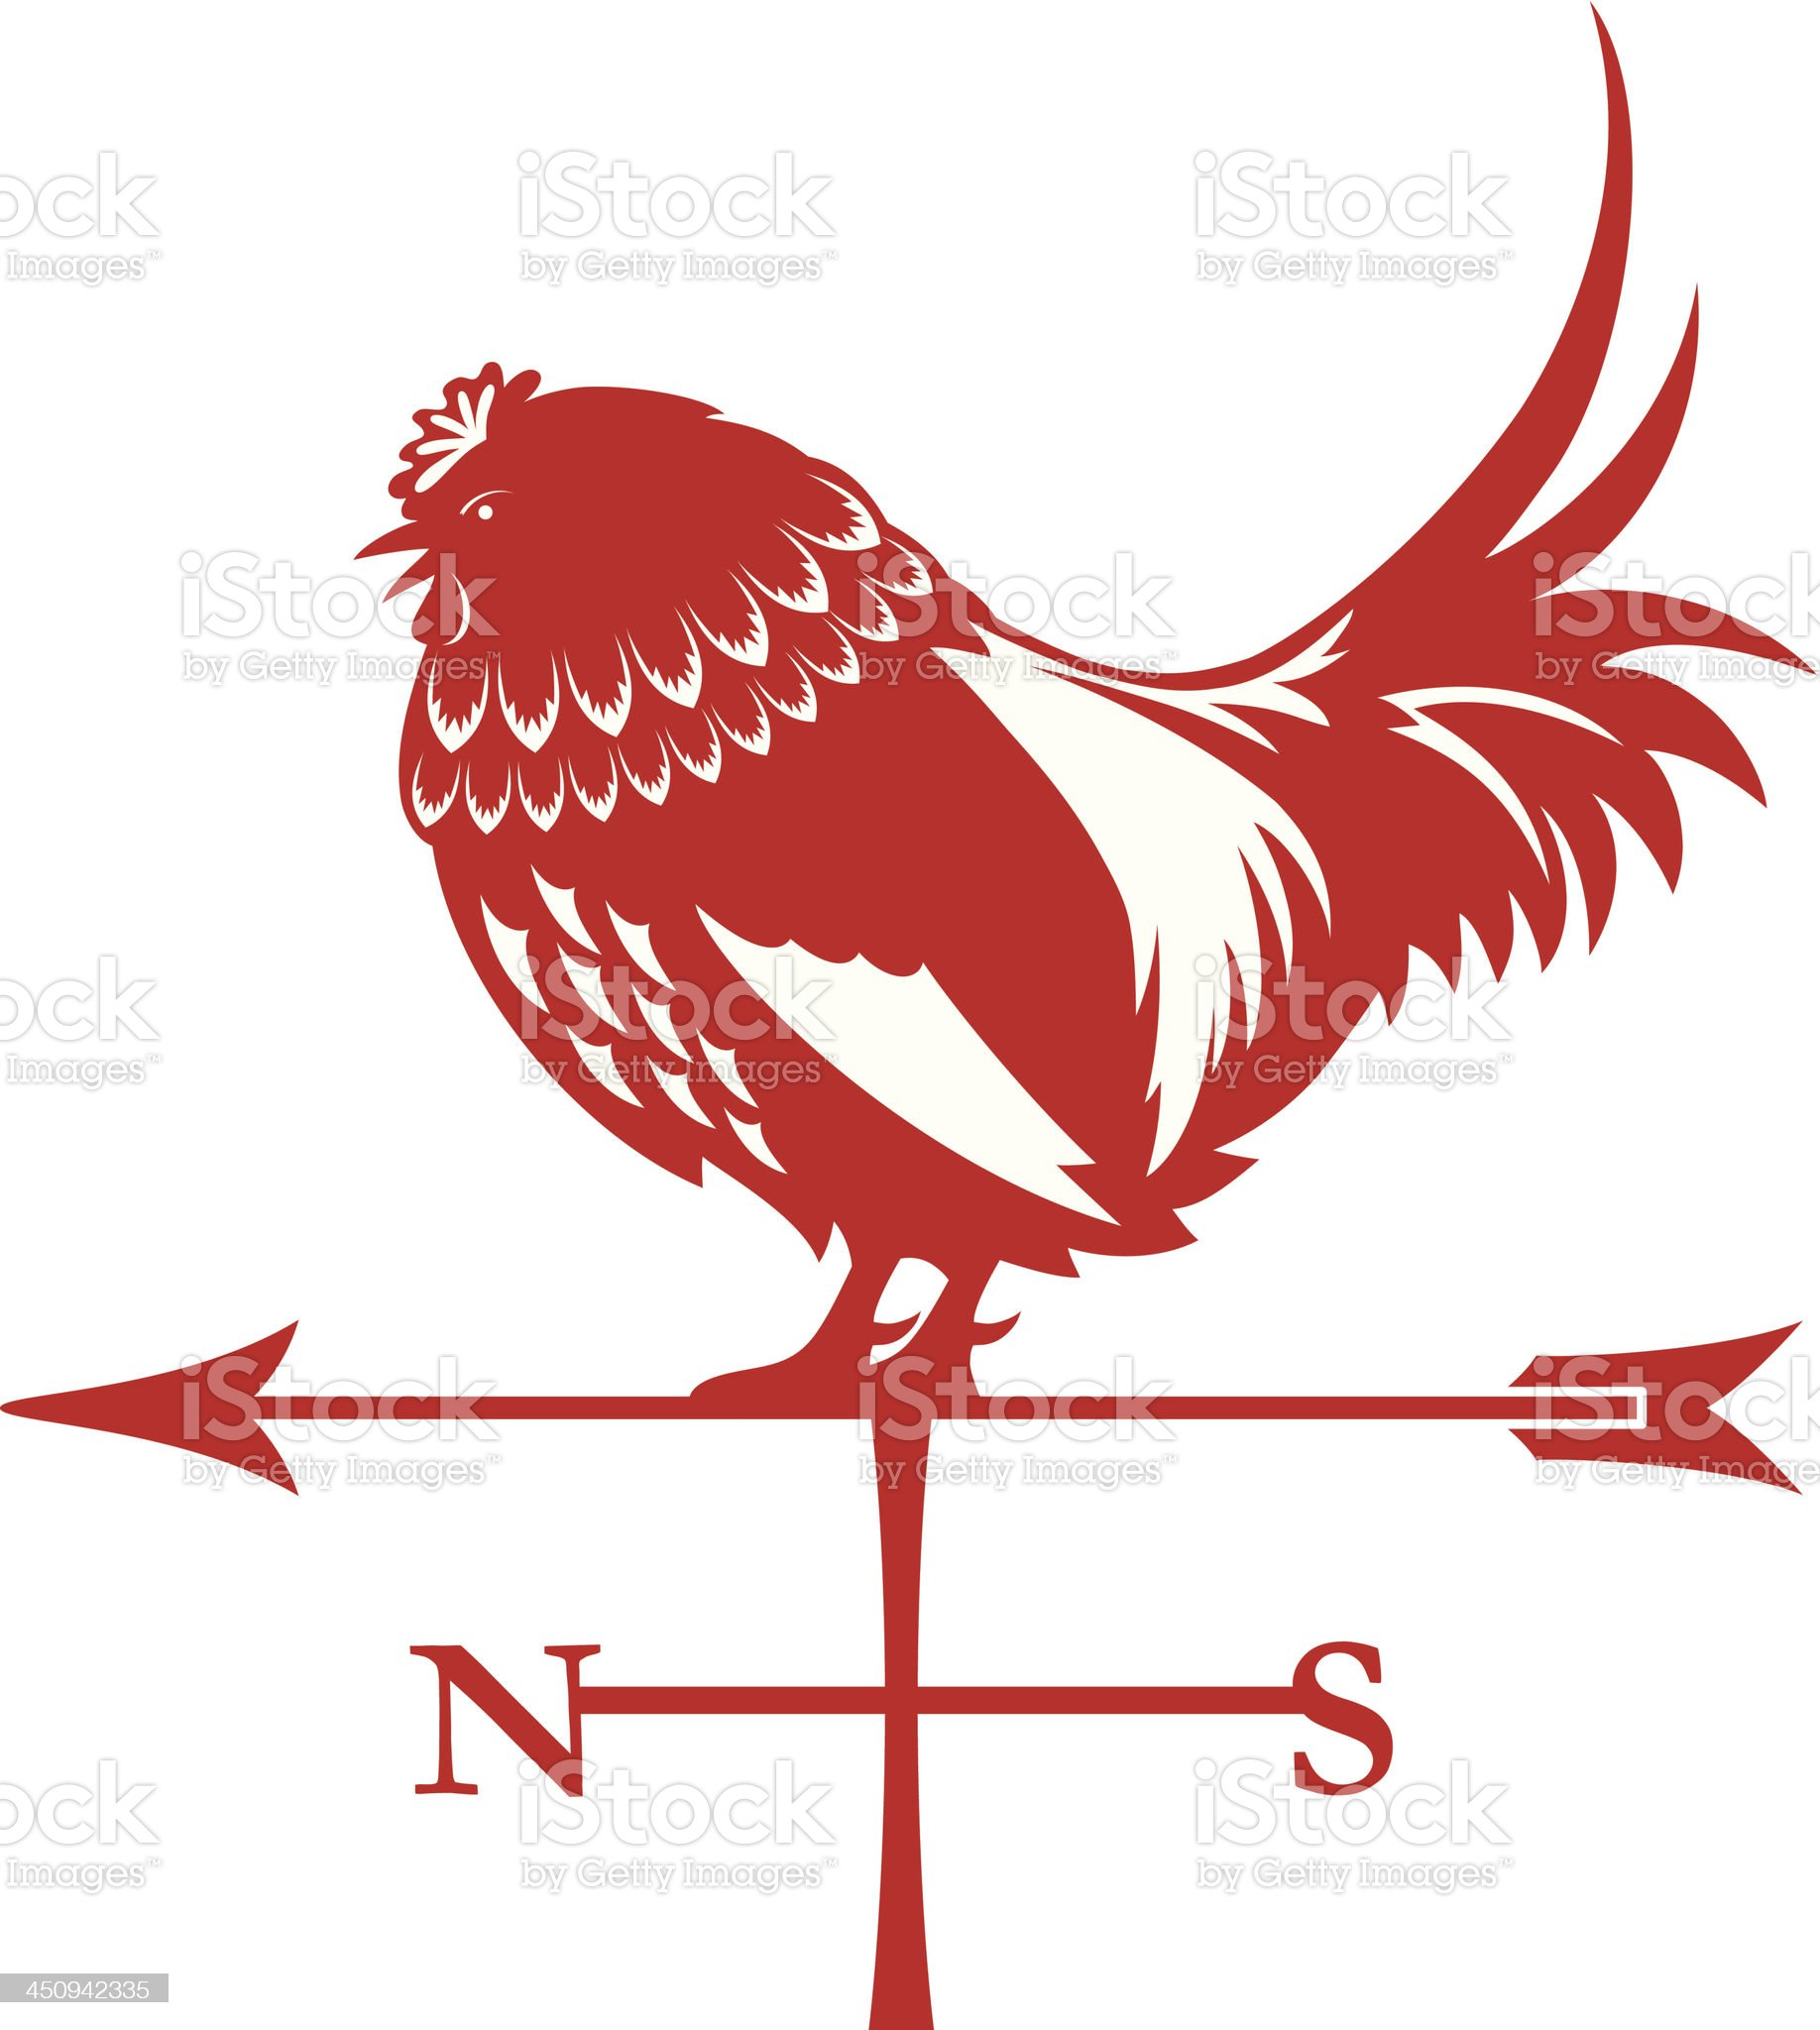 Rooster Silhouette Icon royalty-free stock vector art